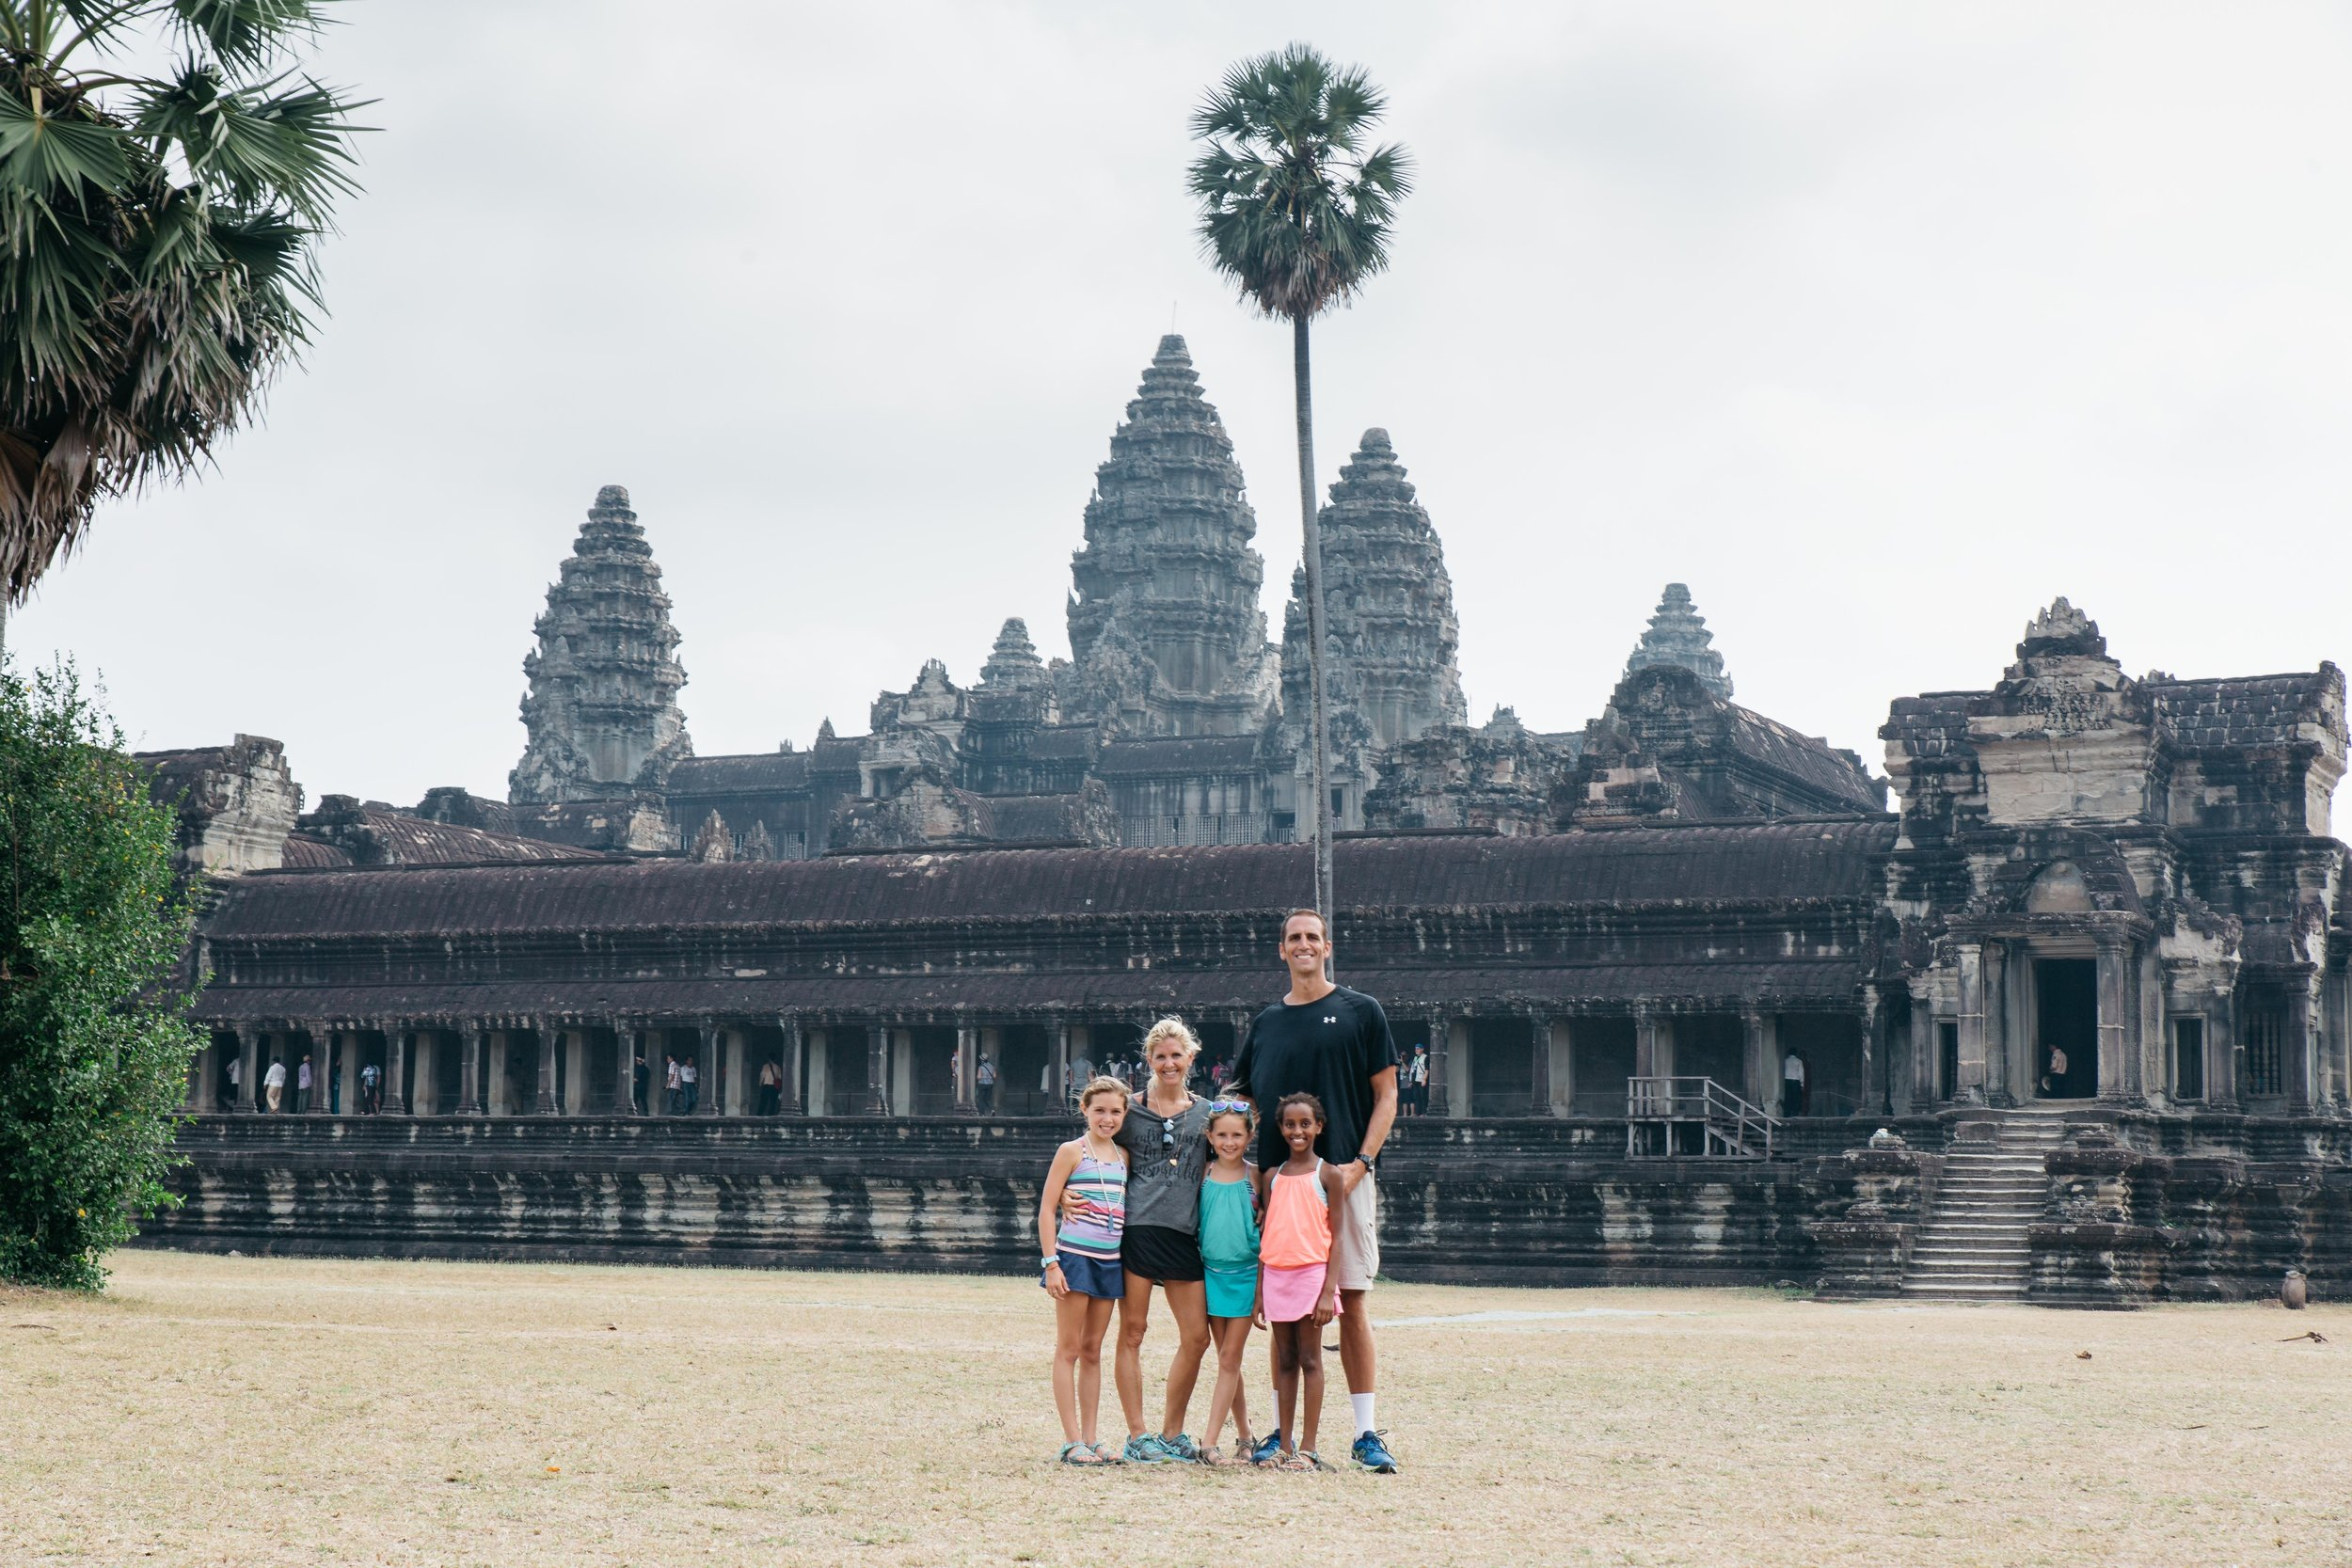 Off to explore Angkor Wat, the 8th wonder of the world in Siem Reap, Cambodia. It only took 37 years, more than 1,000,000 workers, and 4,000 elephants to complete this masterpiece.